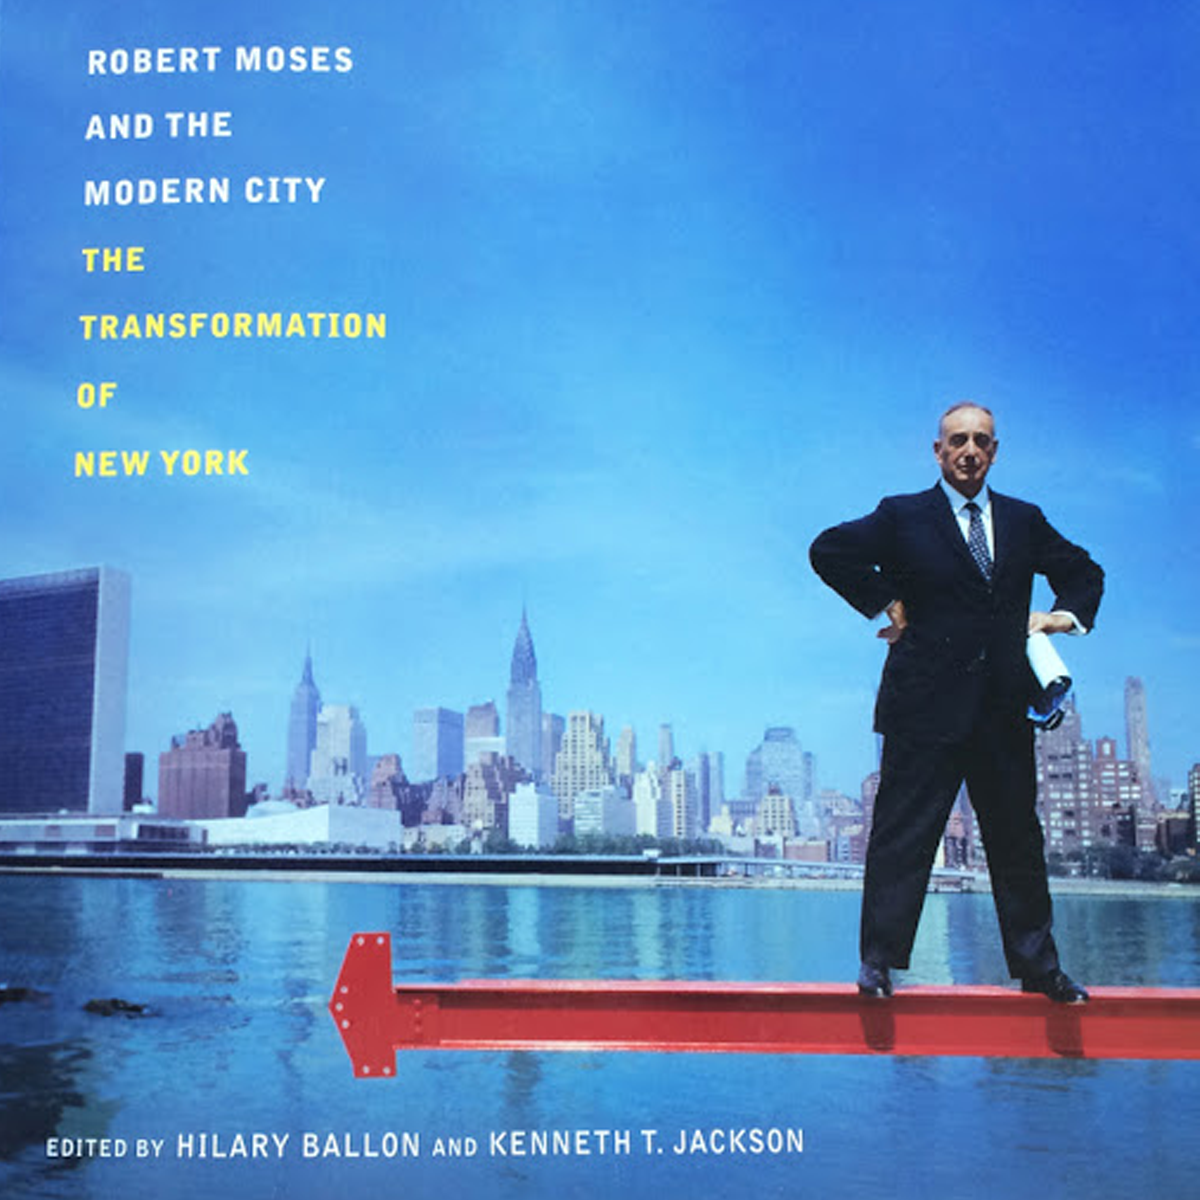 Robert Moses and the Modern City